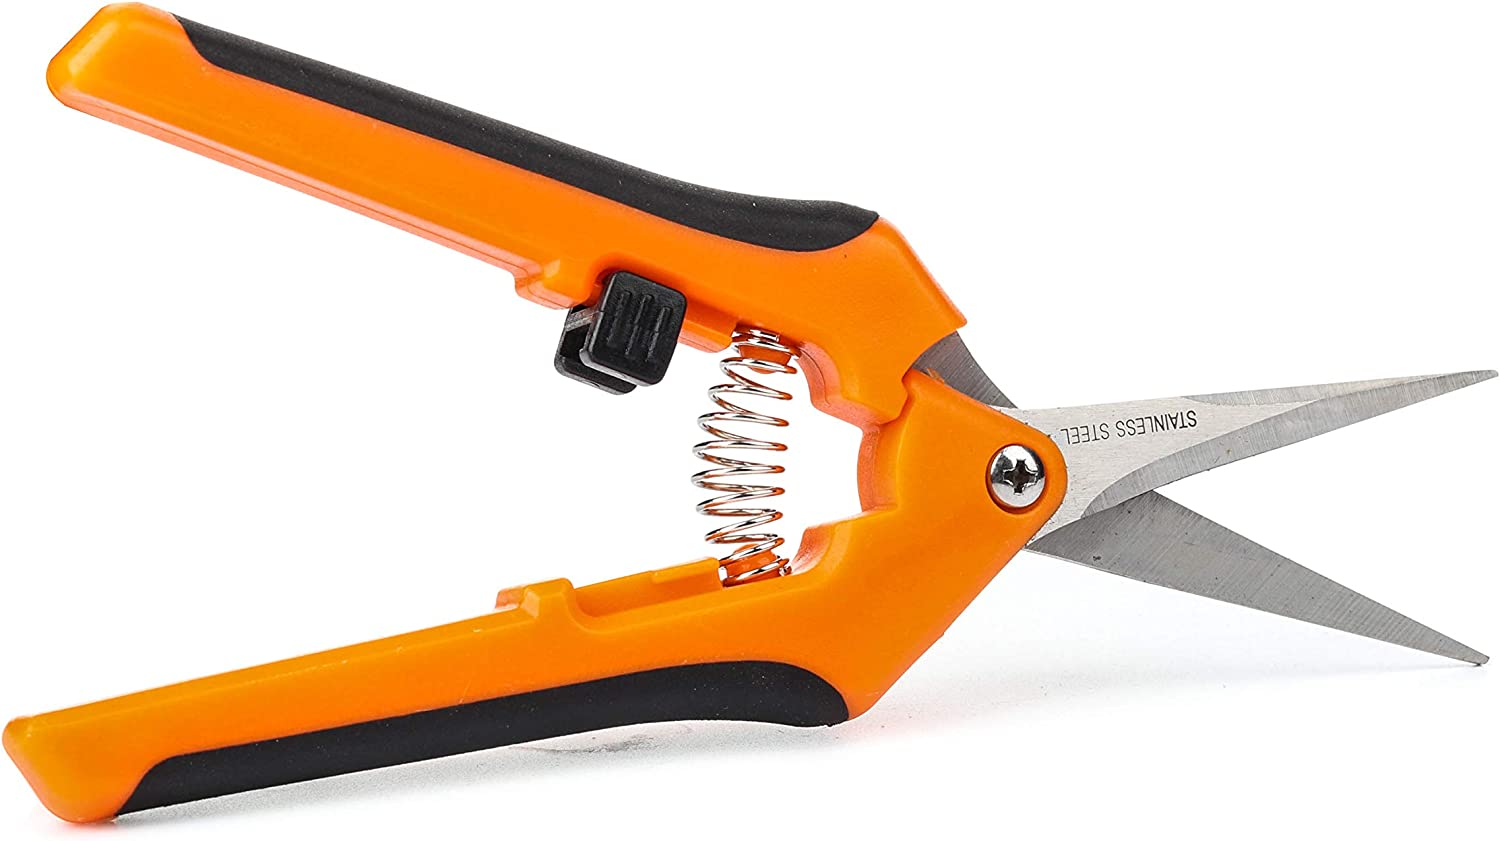 Cokle 6.5 Inch Gardening Shears,Professional Pruner,Pruning Shear with Straight Stainless Steel Blades,Clippers for Plants Gardening Trimming (Orange)